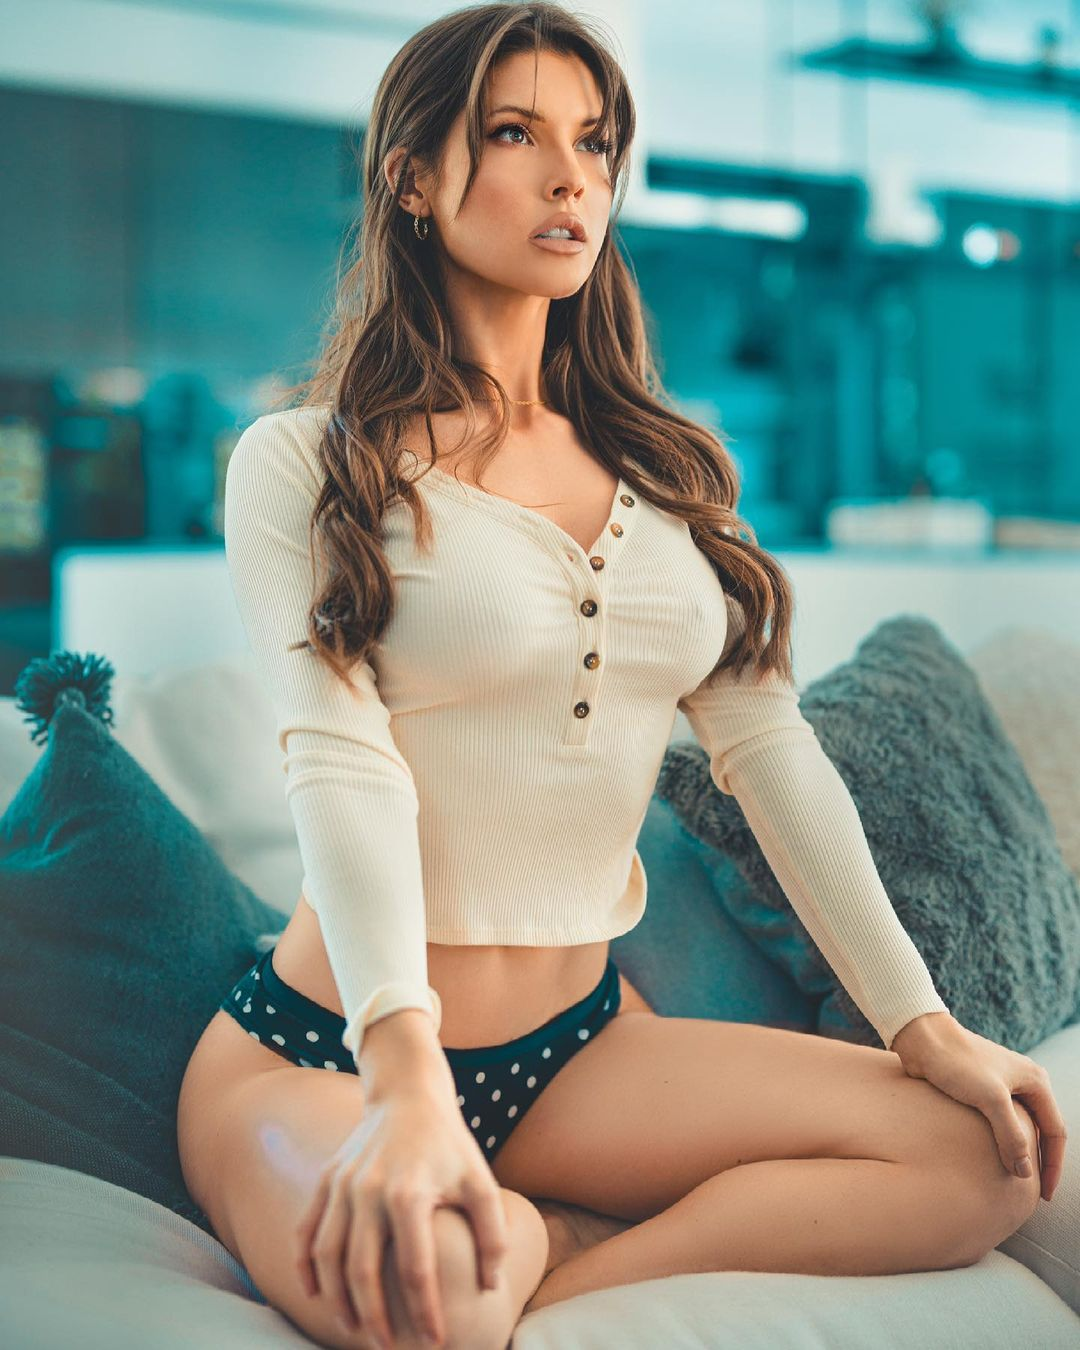 Hot photos of Playboy model and actress Amanda Cerny will take your breath away 3